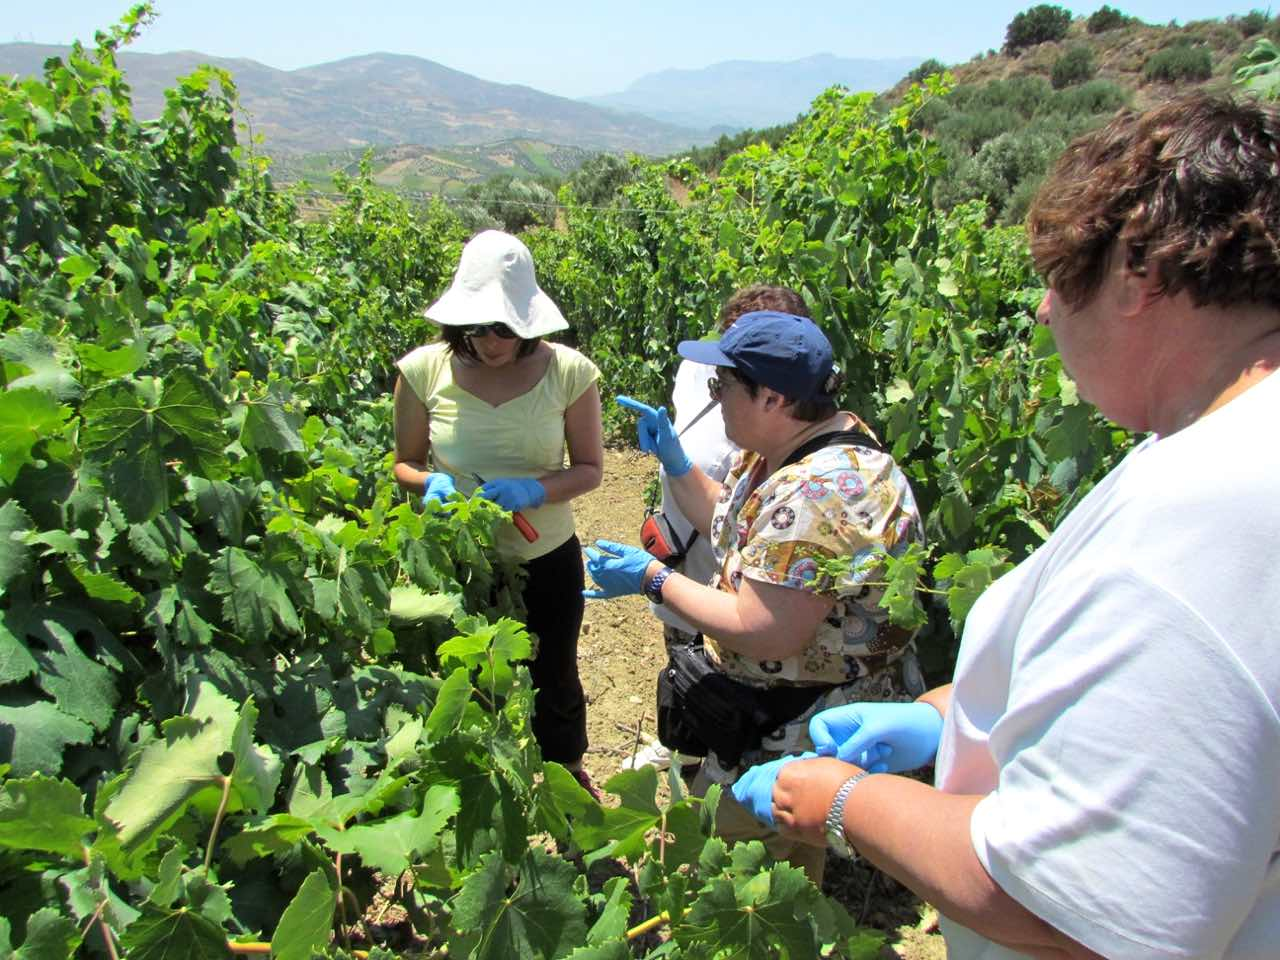 The secret aromas of Cretan wines, A fascinating tour guided by an Enologist, wine tasting workshop heraklion crete, activities heraklion crete, learn more cretan wine, best wine tasting tour crete, things to do heraklion crete, cretan food and wine